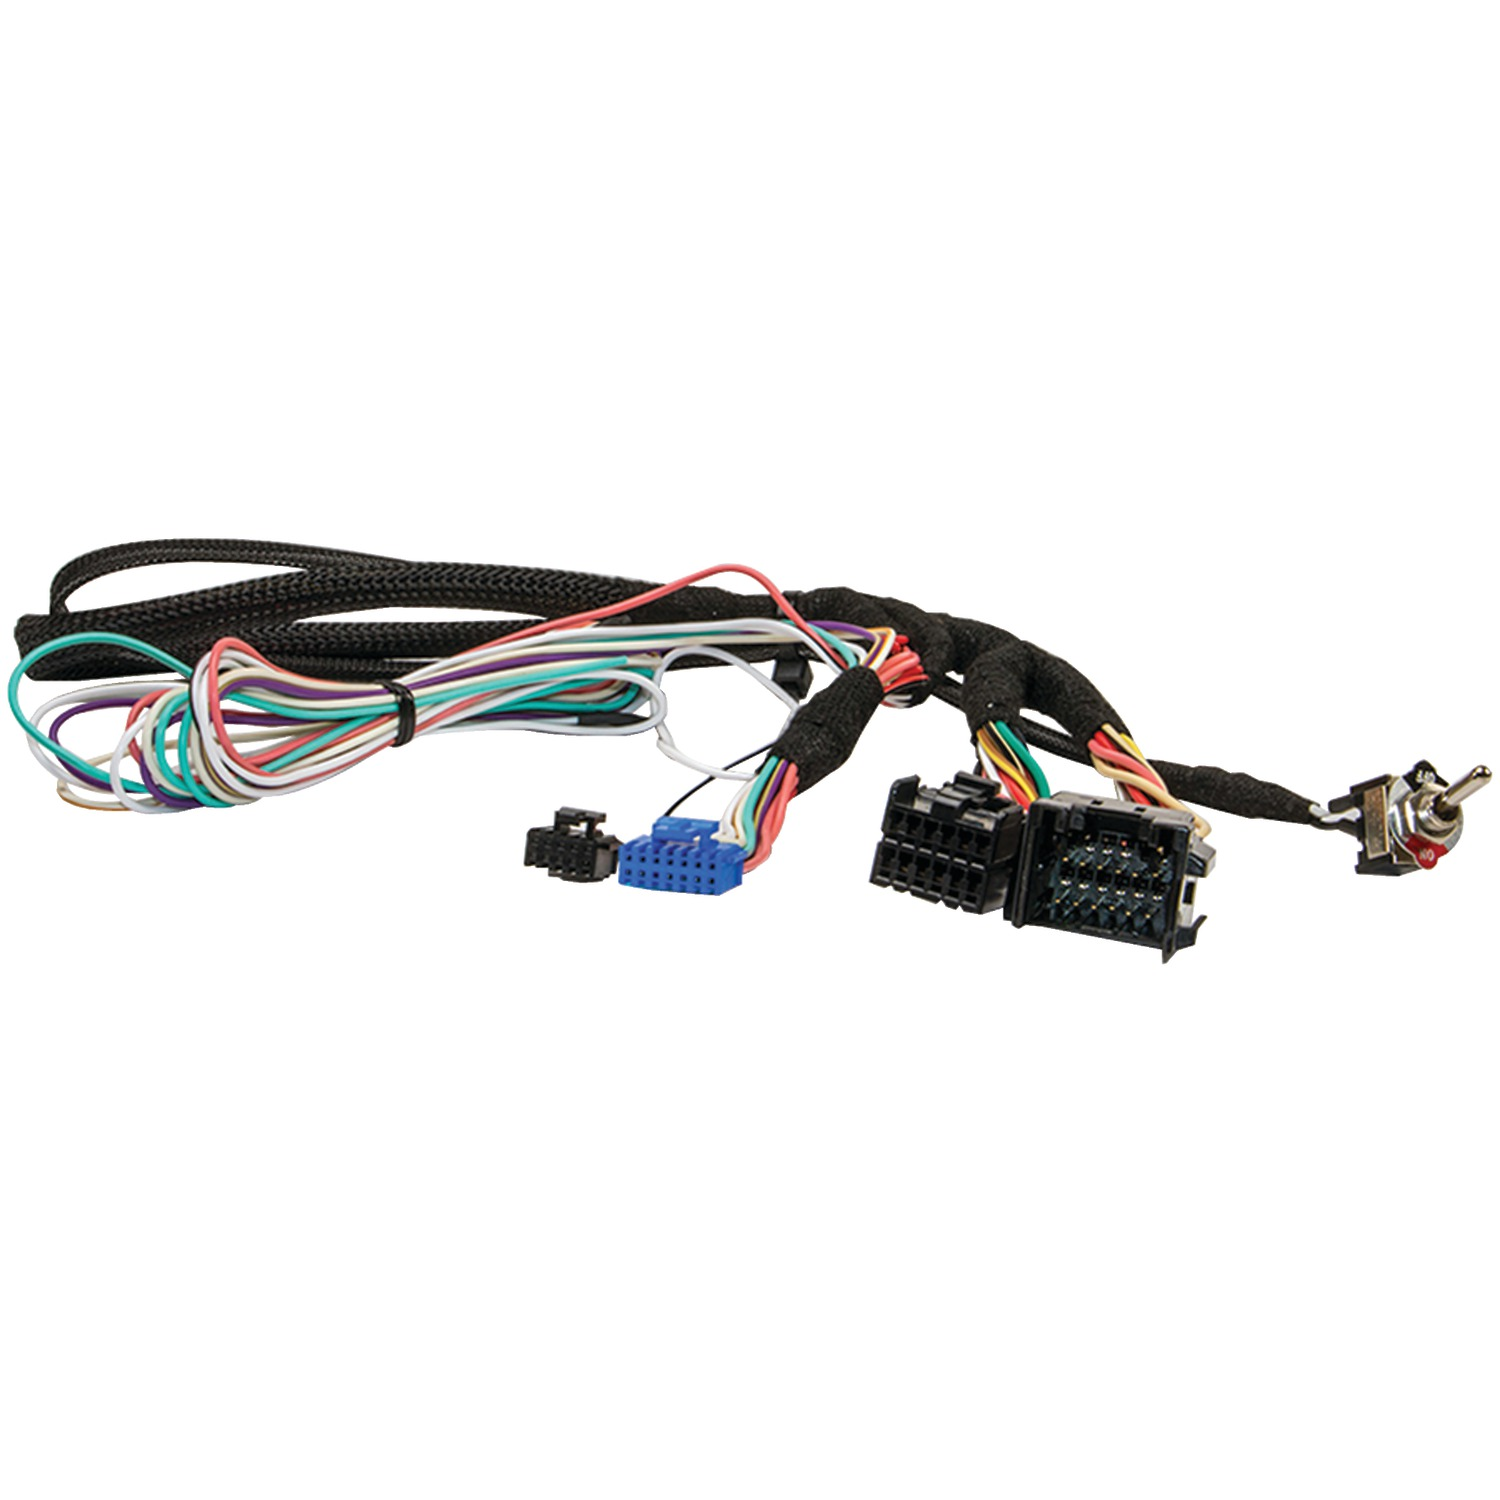 Dball2 Wiring Harness Chrysler Diagram For Free Moreover 1 Aafd1 S L1000 Furthermore 41kobyykq8l Sy300 Ql70 Further 63370